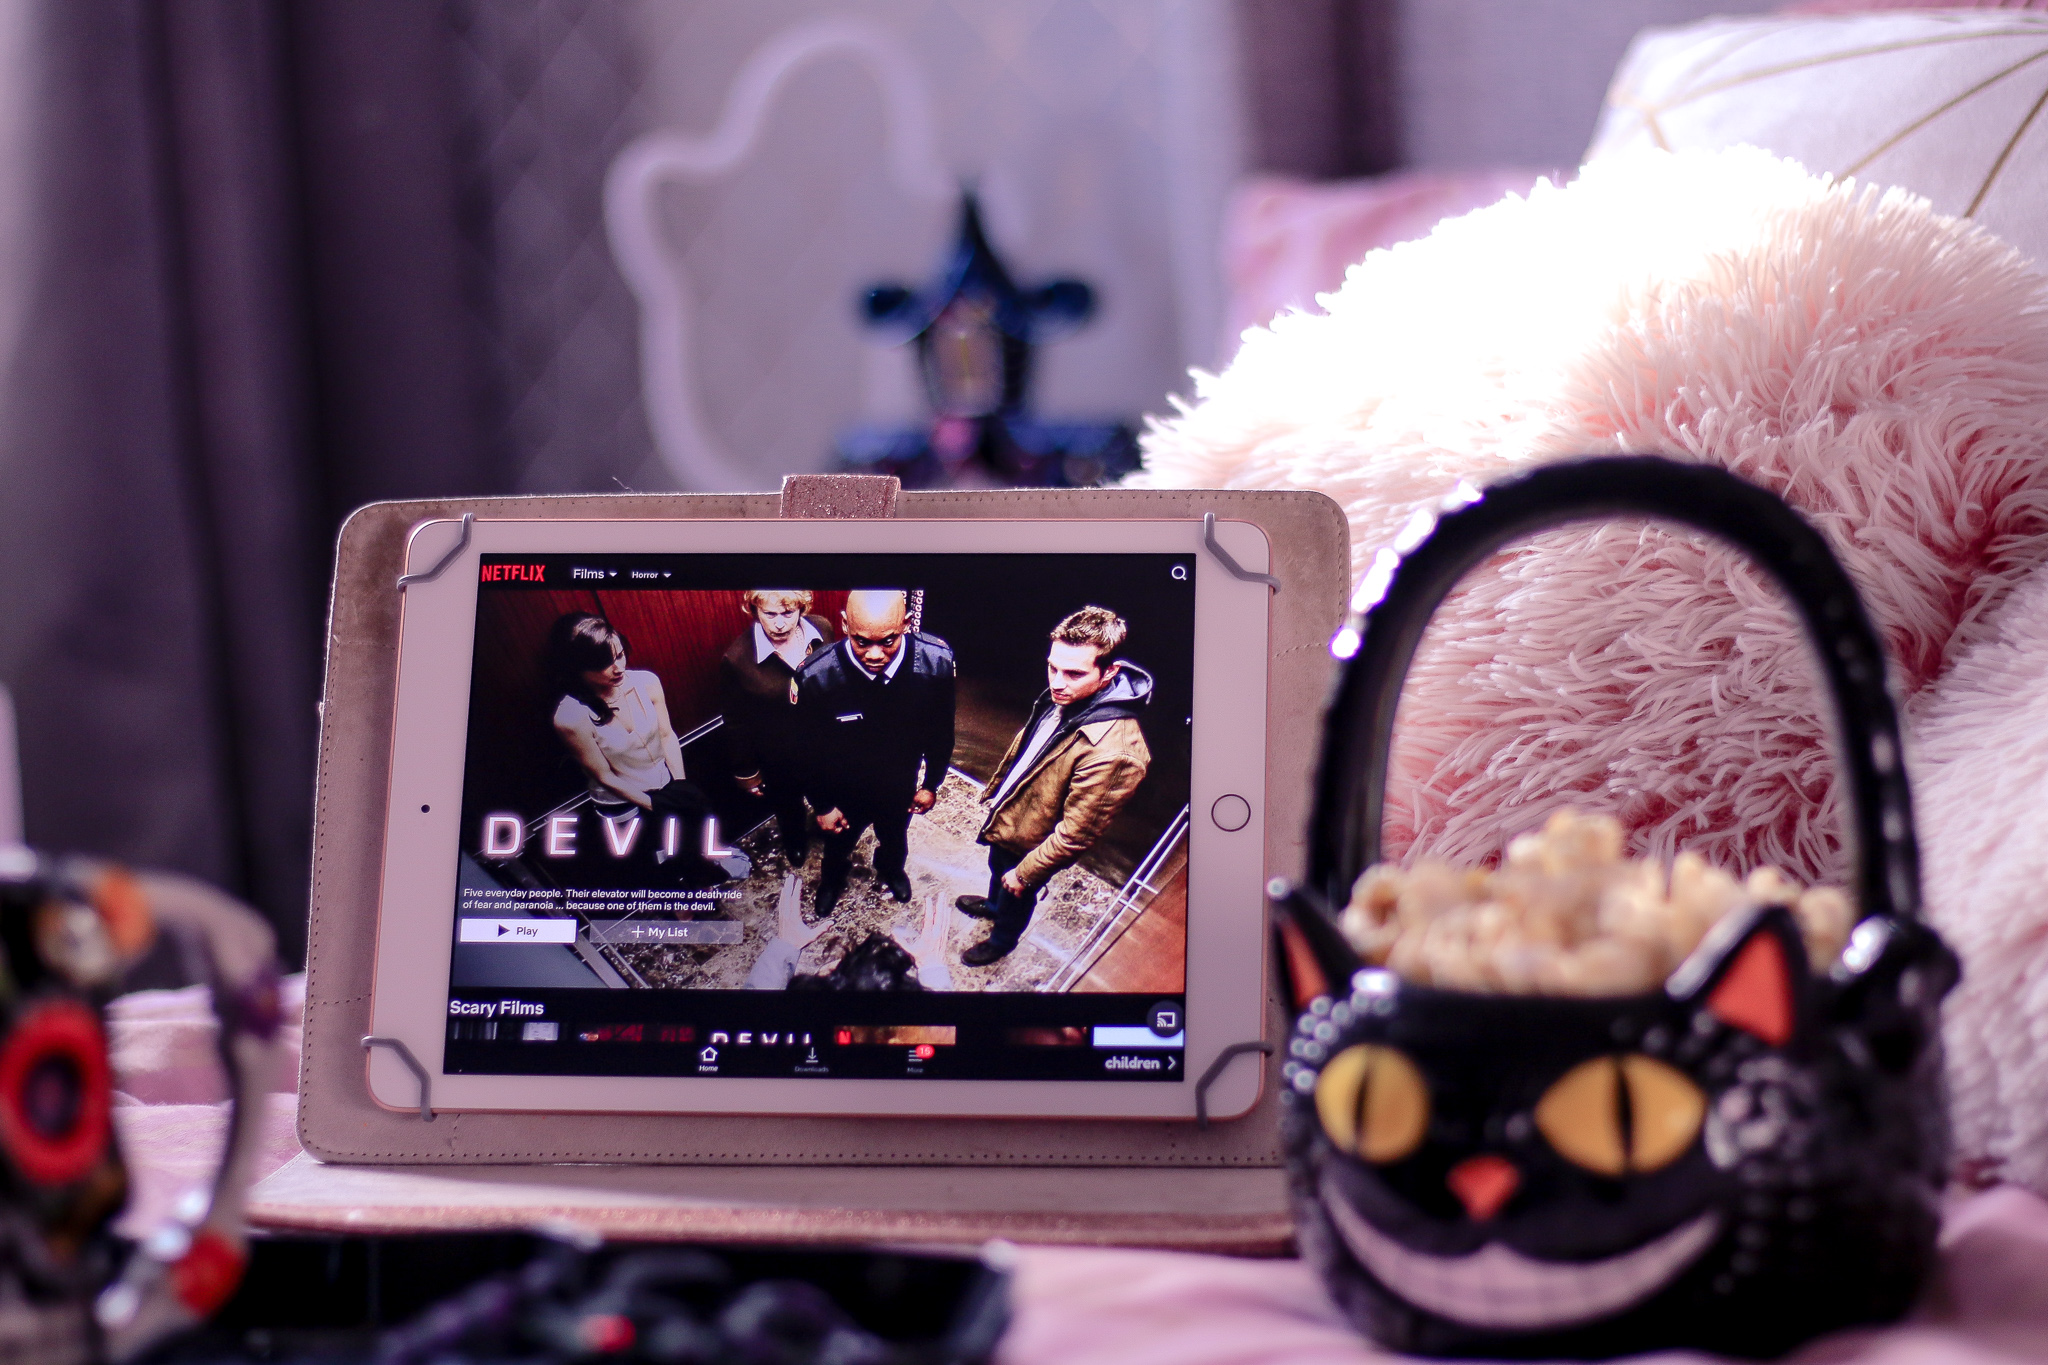 Close up photo of an iPad with Netflix uk on the screen with a black sugar skull to the left of the photo, out of focus.